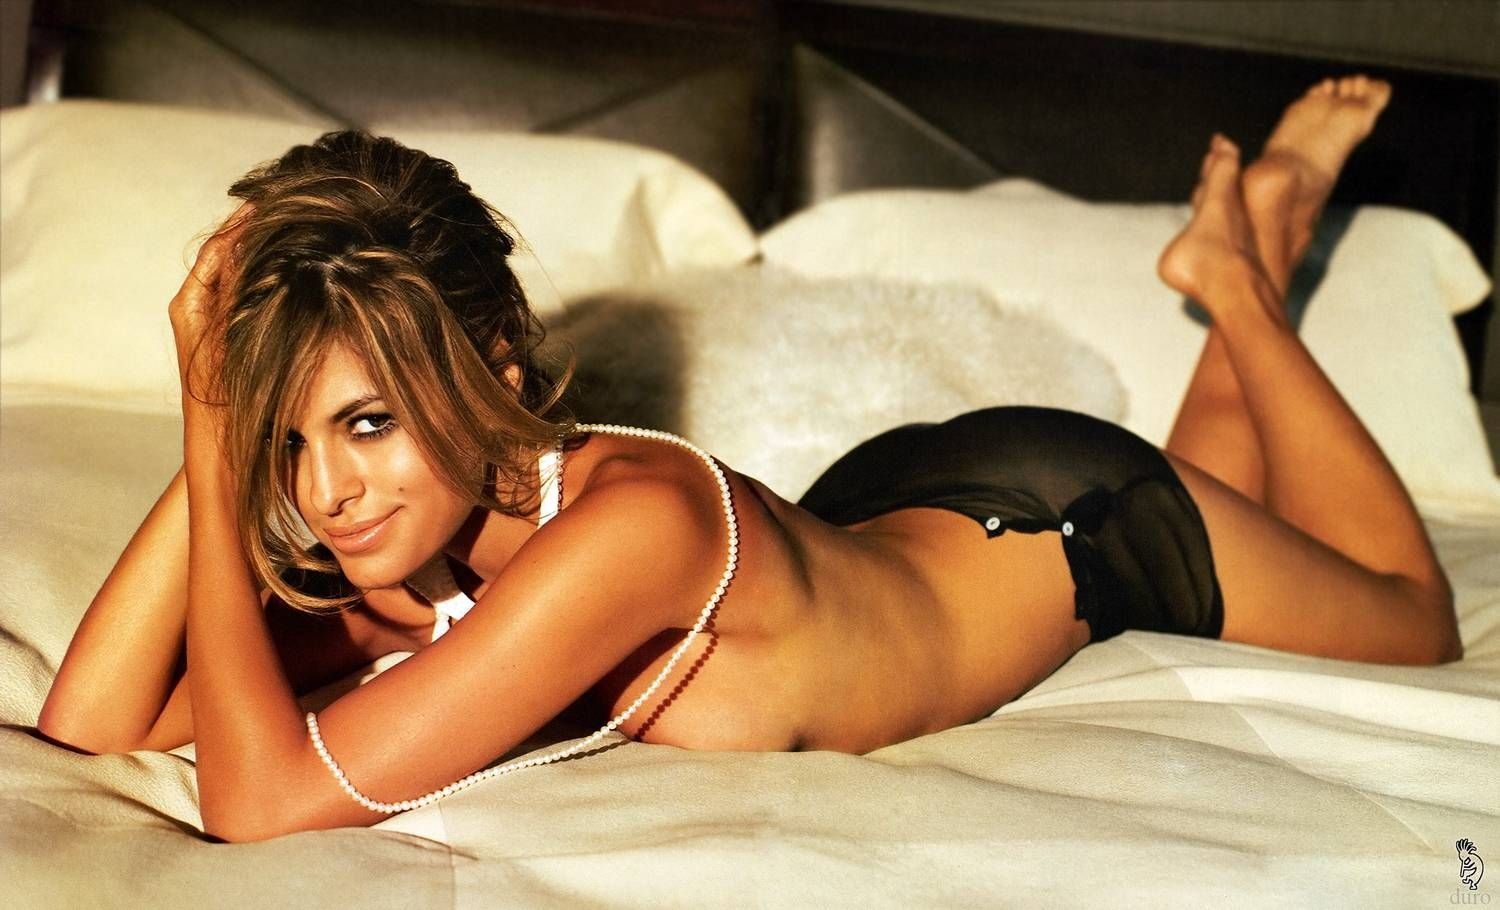 Eva mendes naked celebrity picture sexy